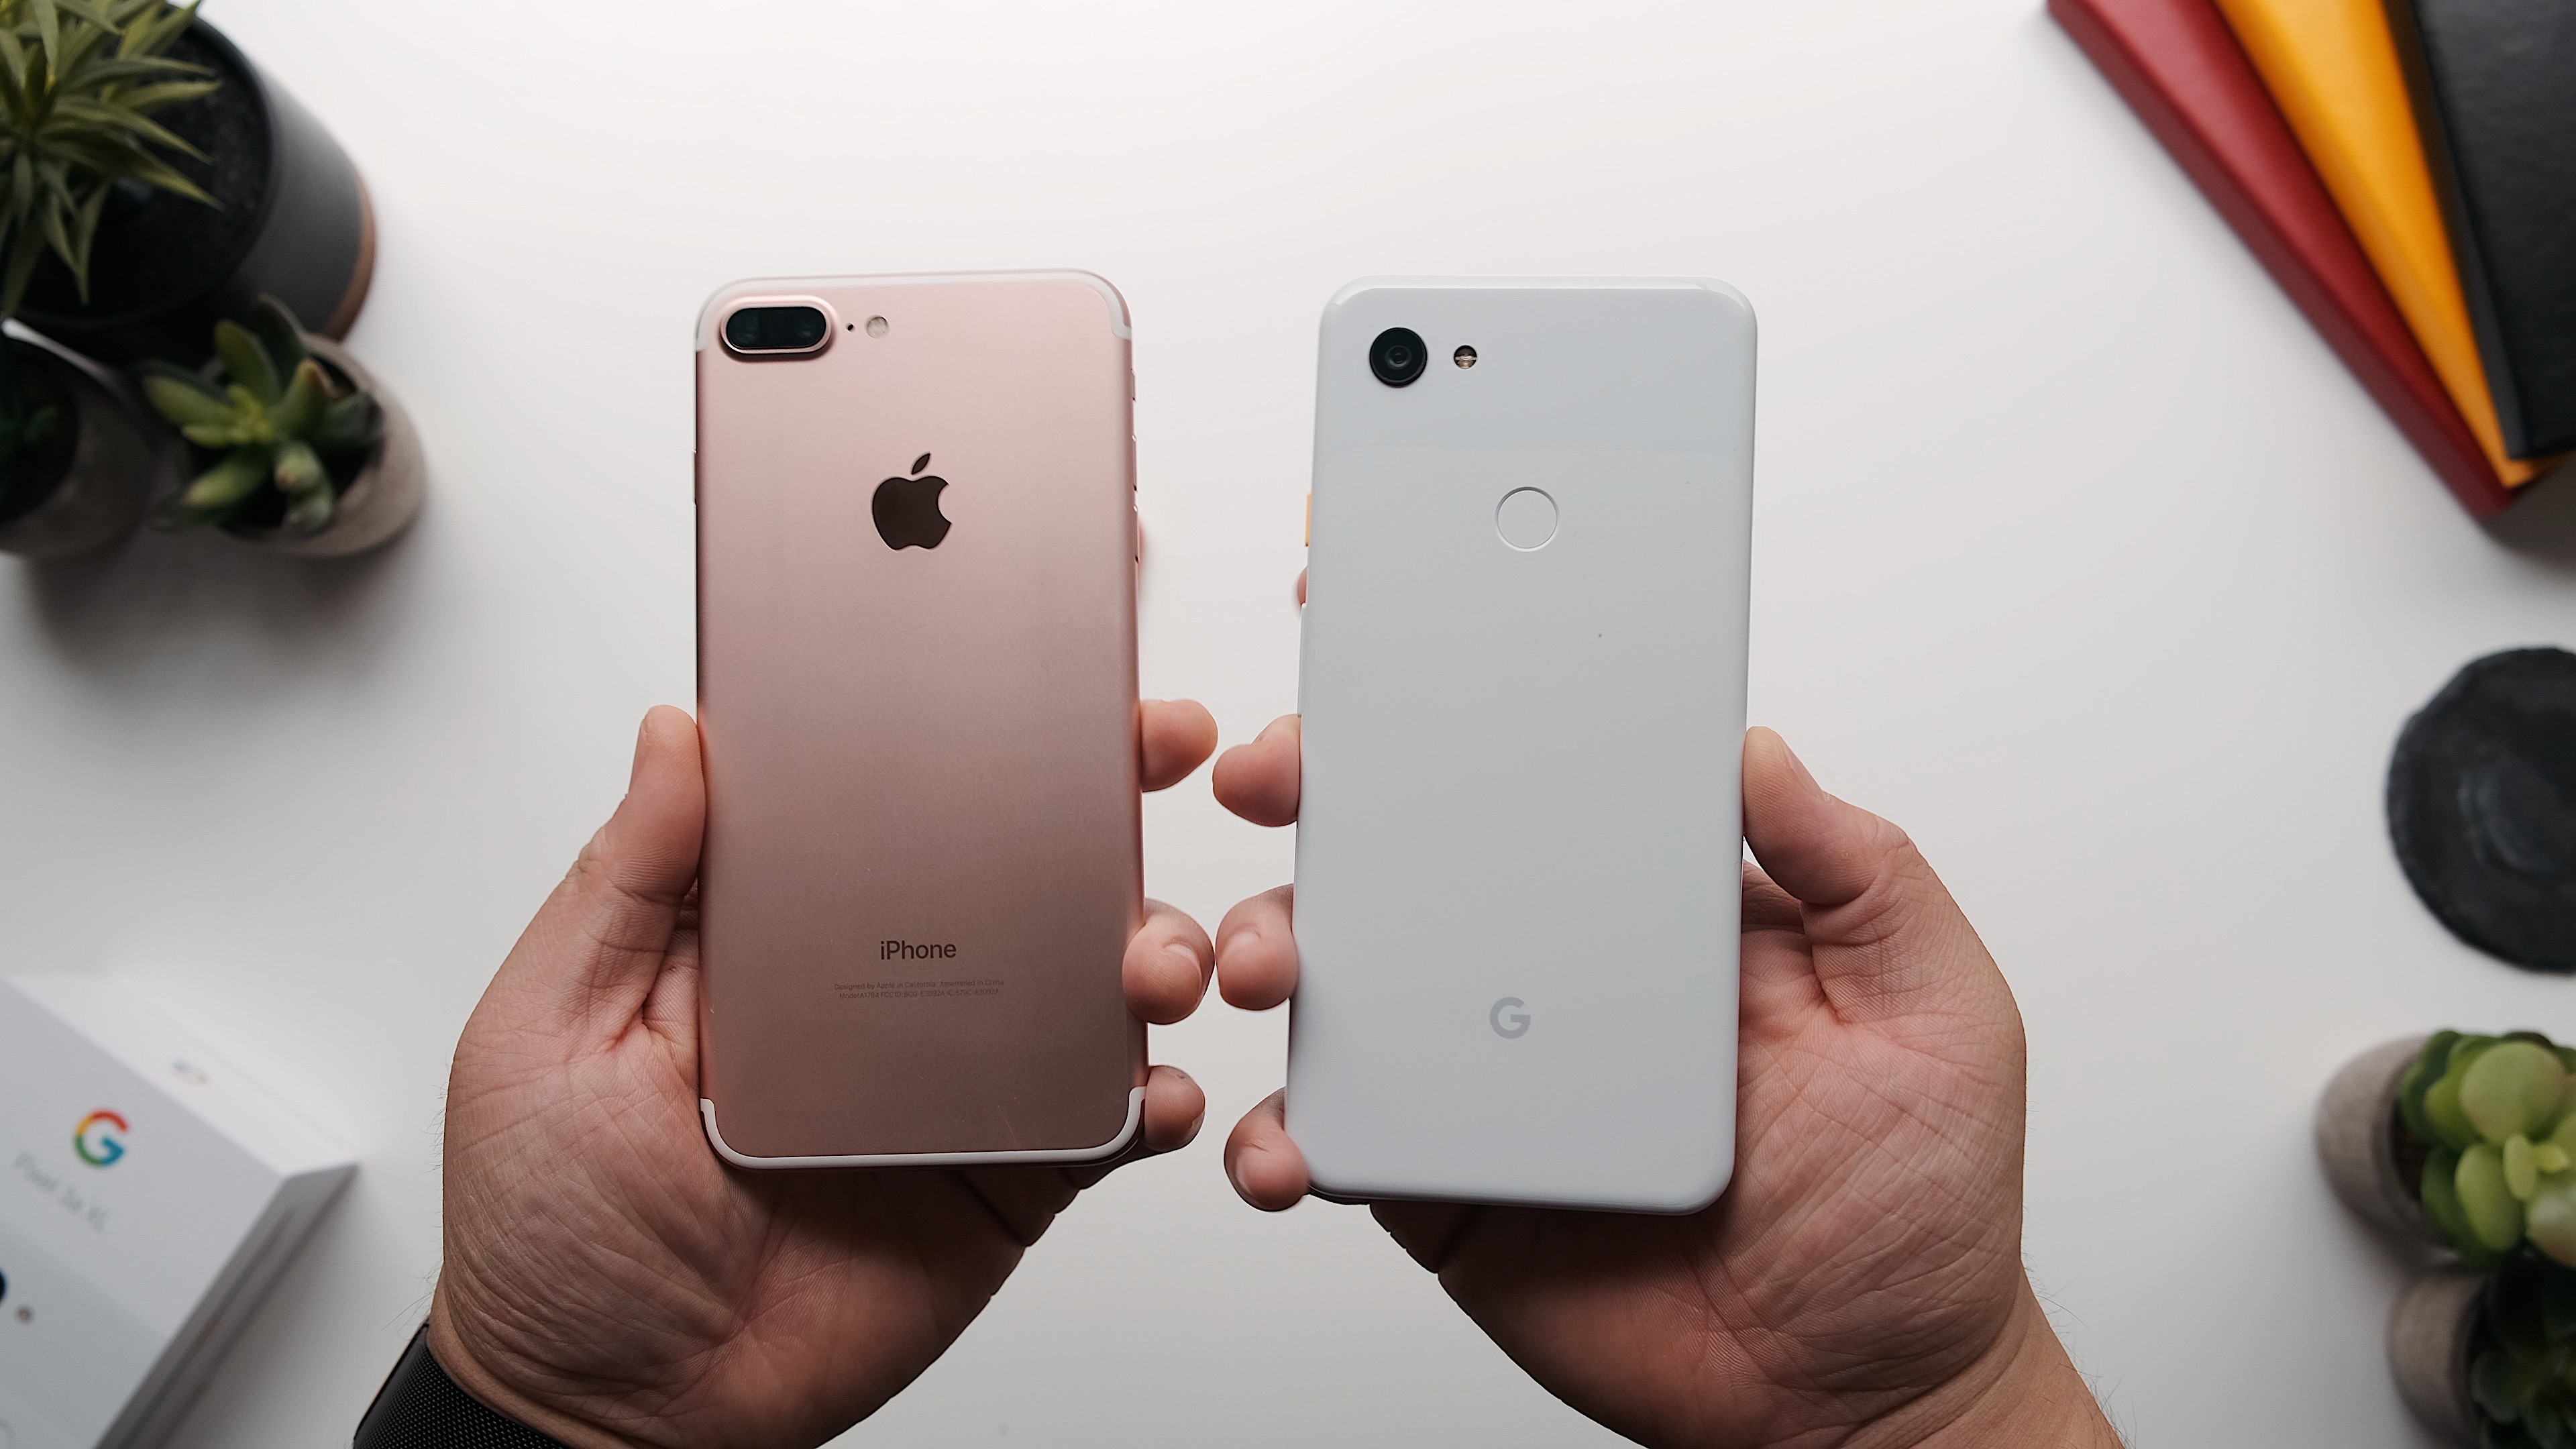 Compared: Google's Pixel 3a XL vs. Apple's iPhone 7 Plus